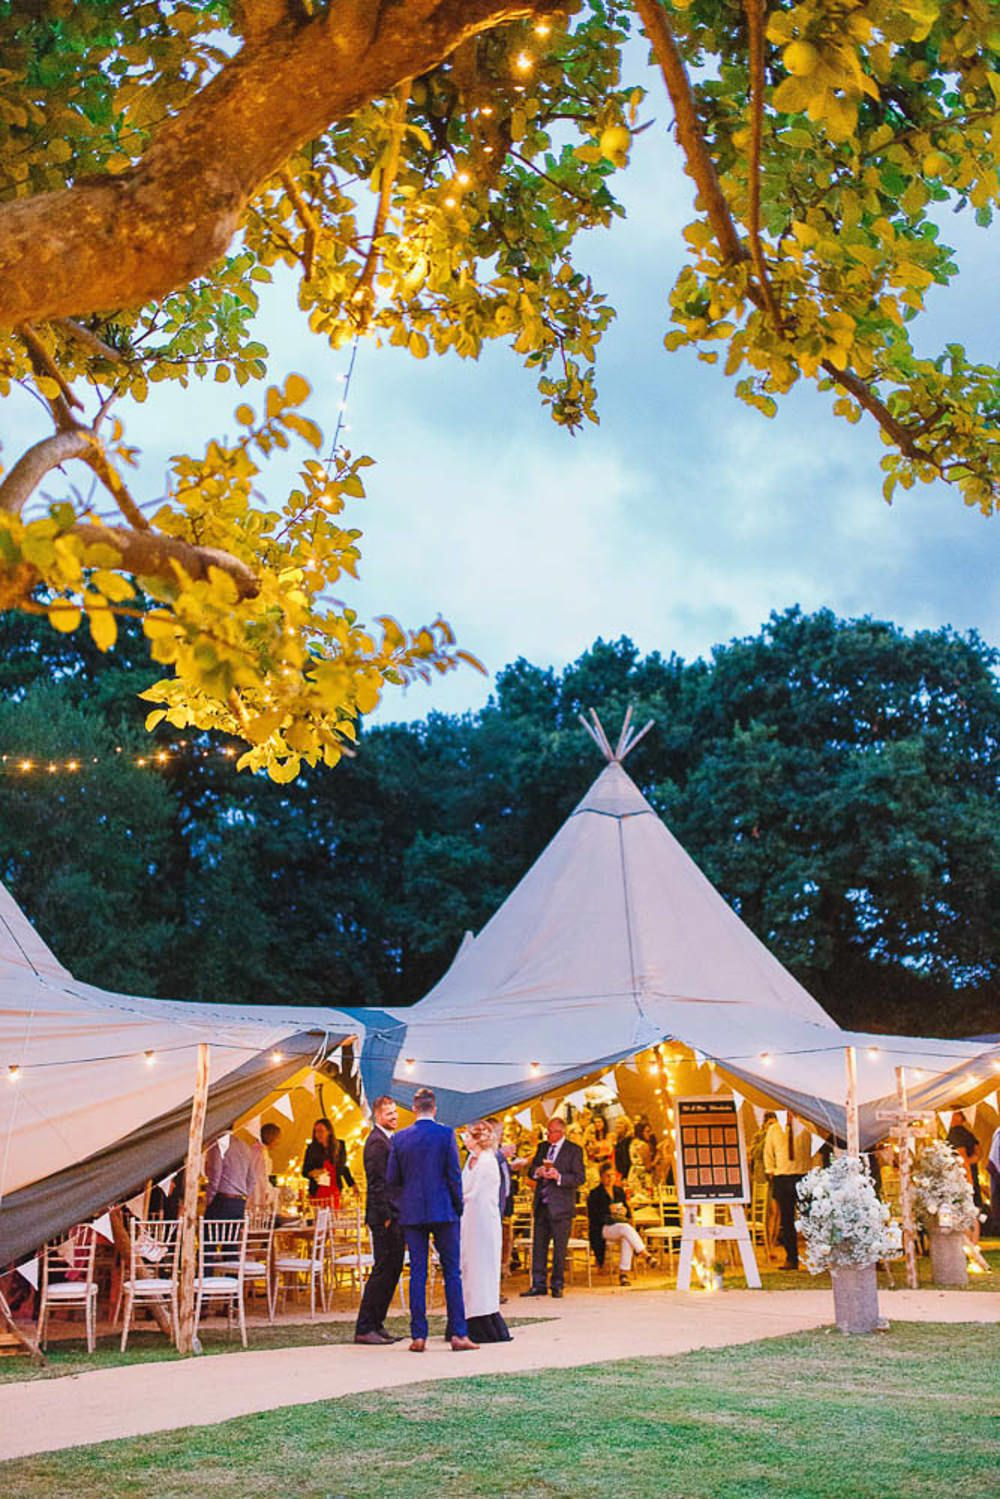 At Home Rustic Tipi Wedding with Navy Wedding Party Tipi